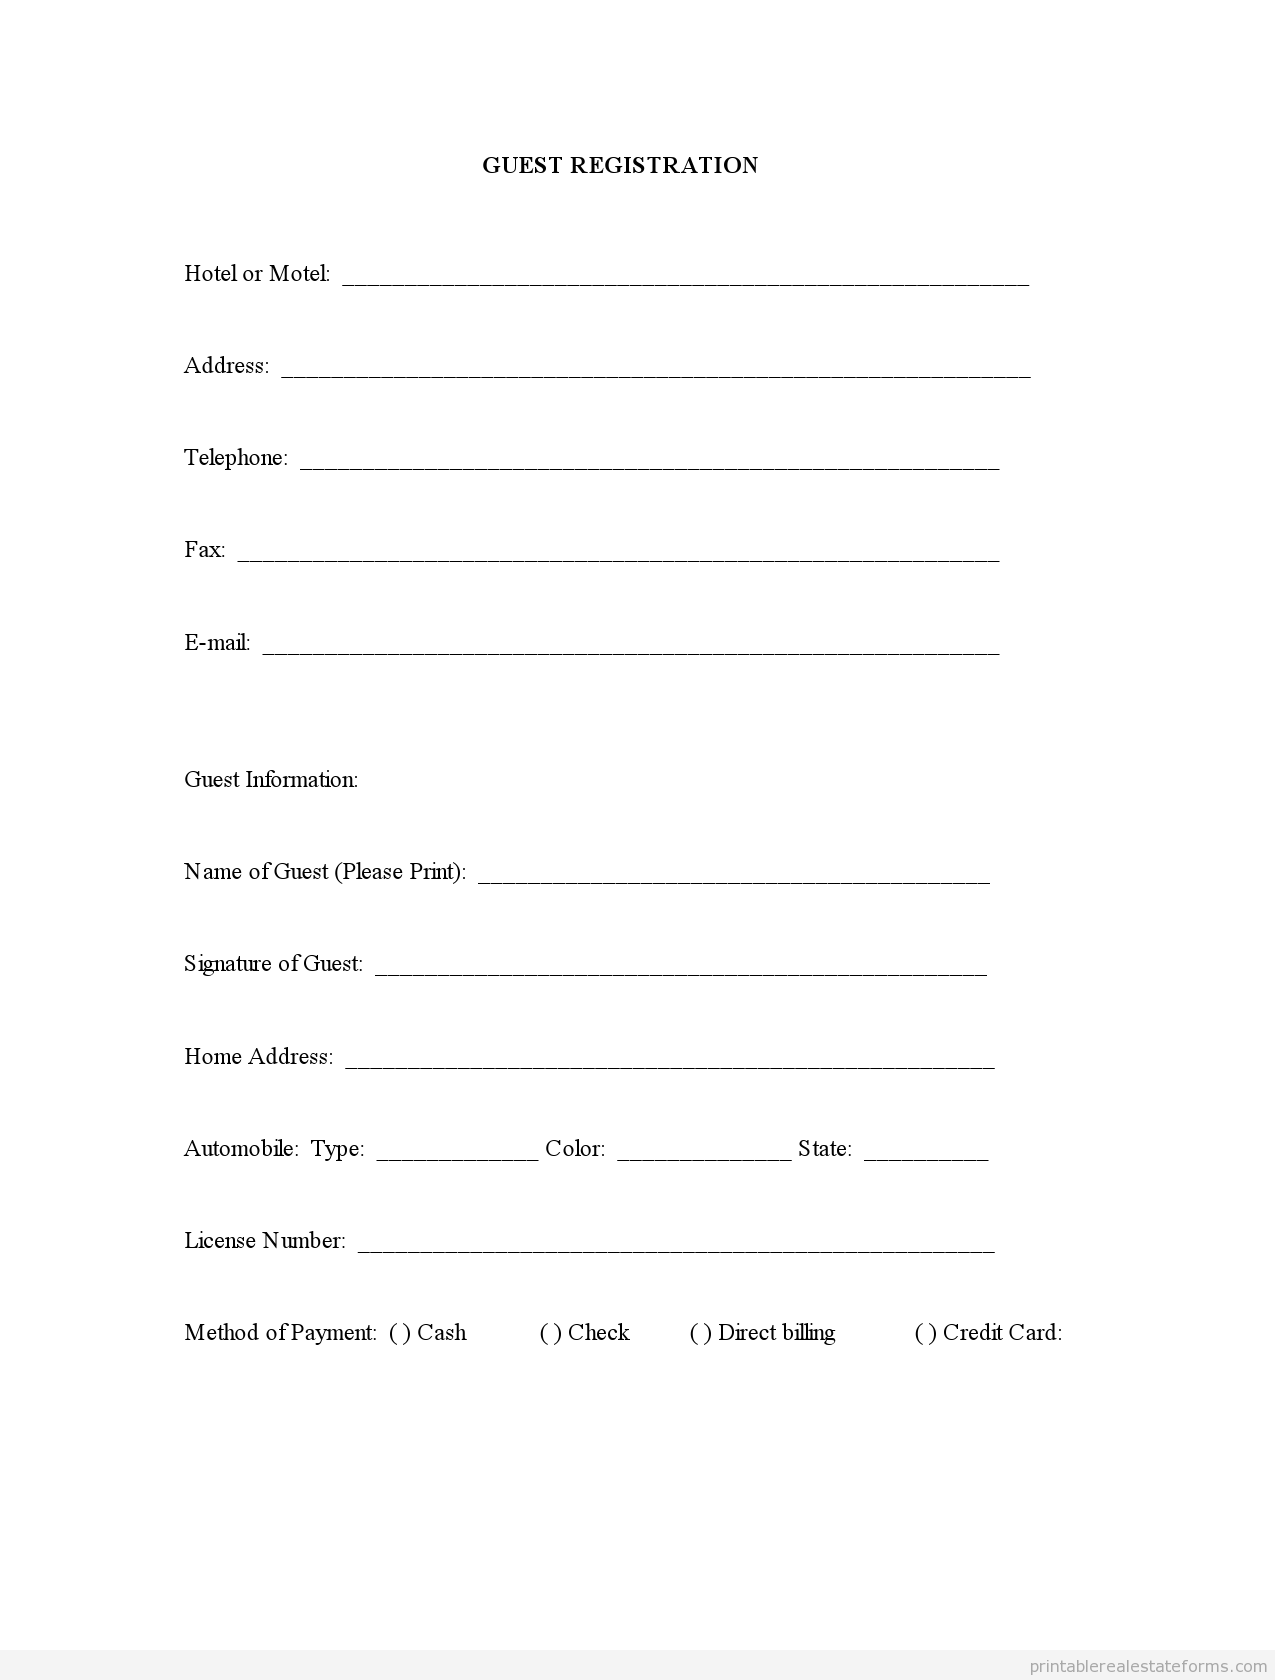 sample printable guest registration form printable real estate